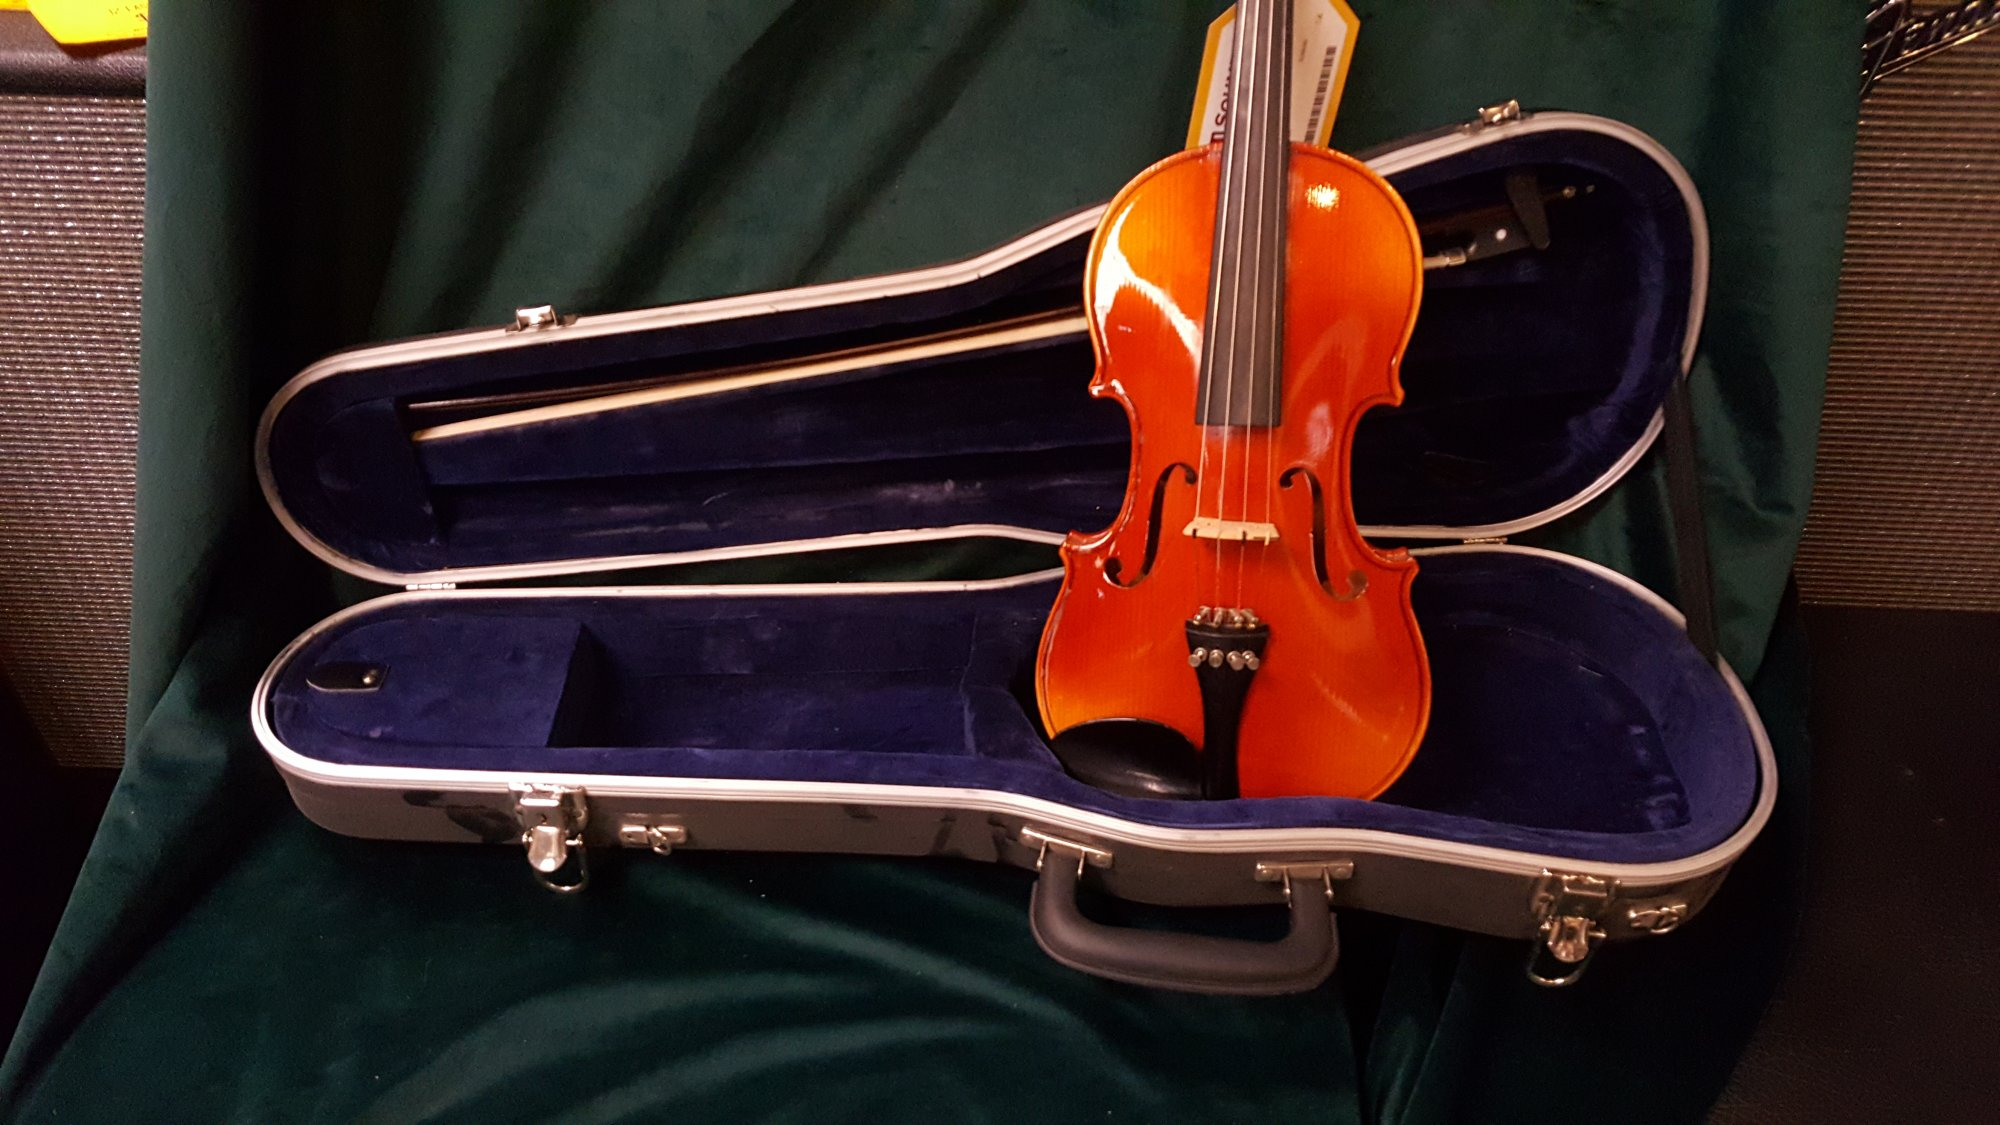 Used Josef Lorenz Luby (Schonbach) 3/4 Size Violin Outfit